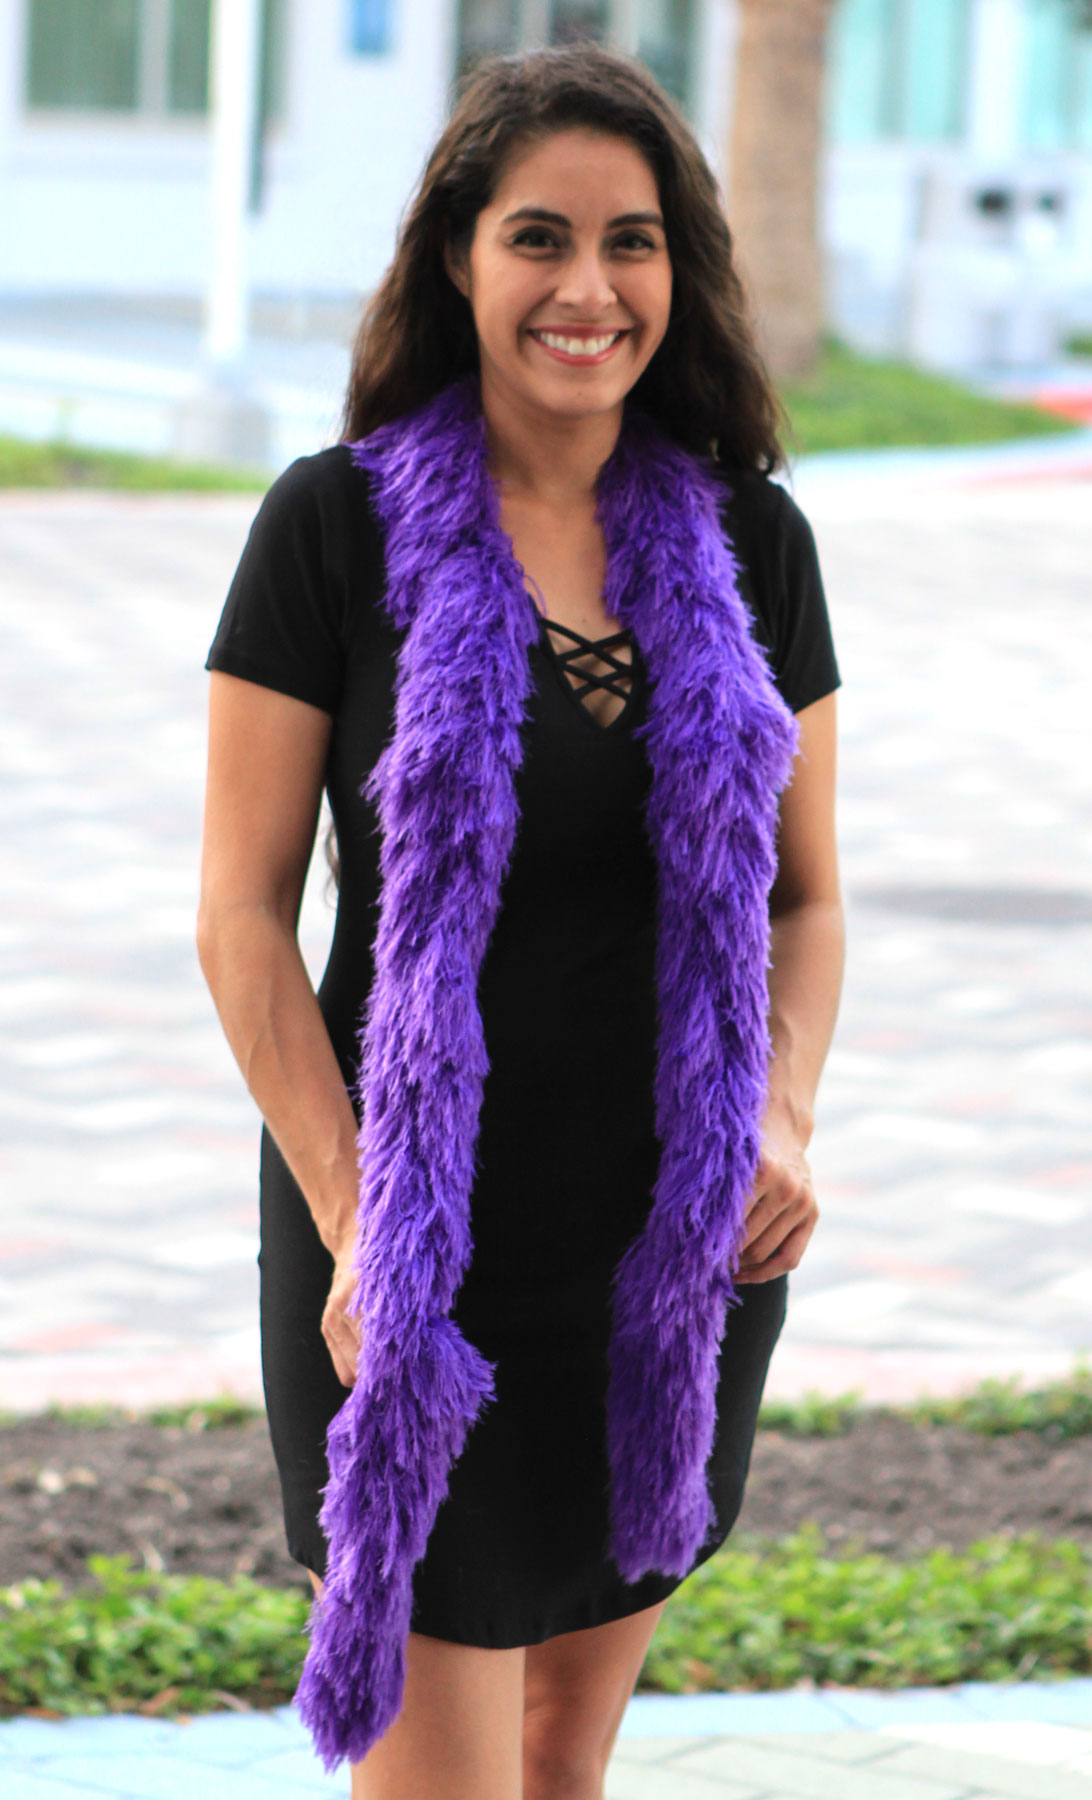 Faux Fur Festival Boa - Purple - Happy Boa: Faux Feather Boa